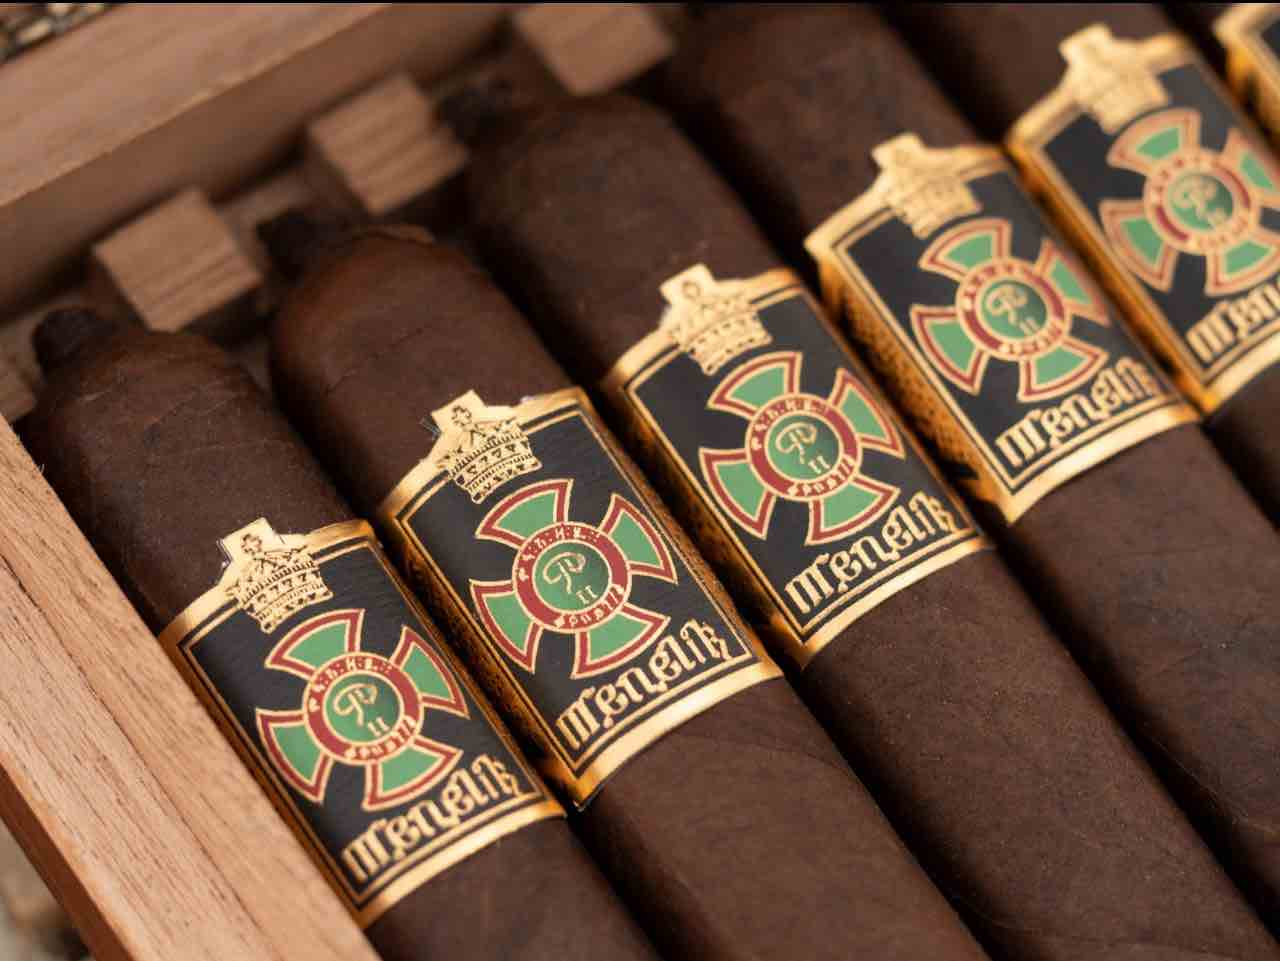 Cigar News: Foundation Cigar Company to Release Menelik at 2019 IPCPR